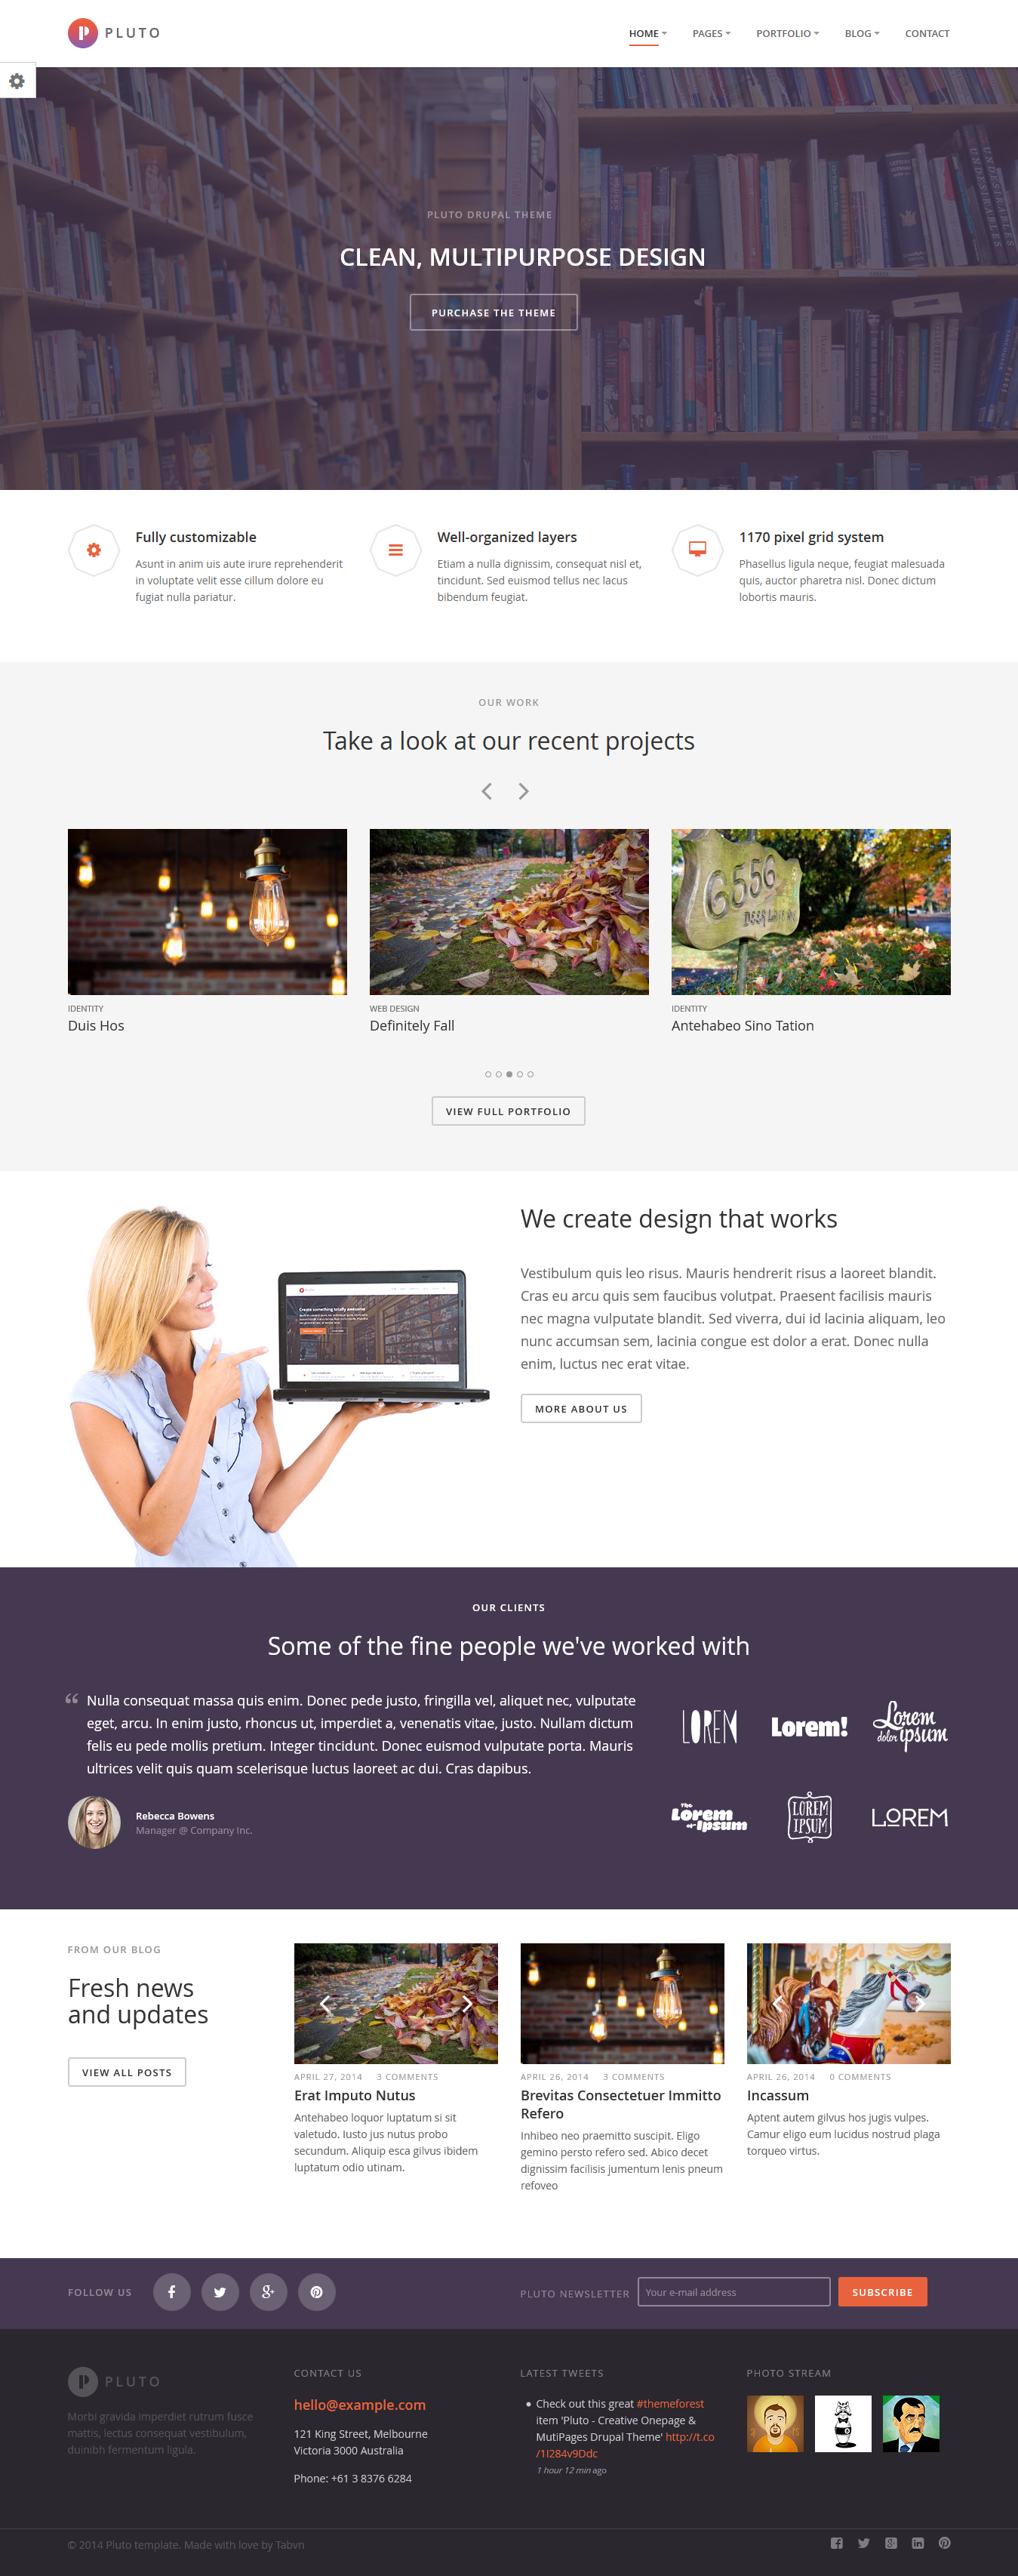 Pluto Is The Awesome Responsive Drupal Theme Onepage Mutipages Created For Corporate And Portfolio Websites Busines Drupal Theme Corporate Business